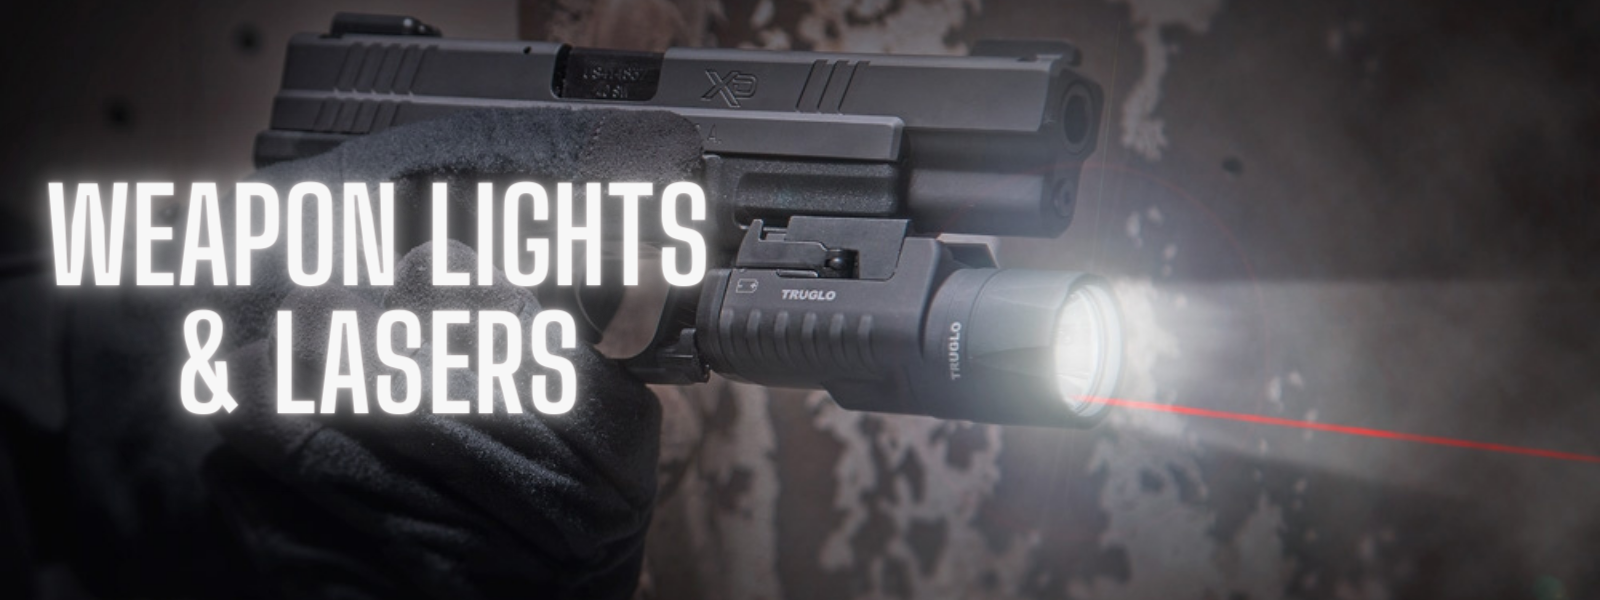 weapon lights and lasers Canada